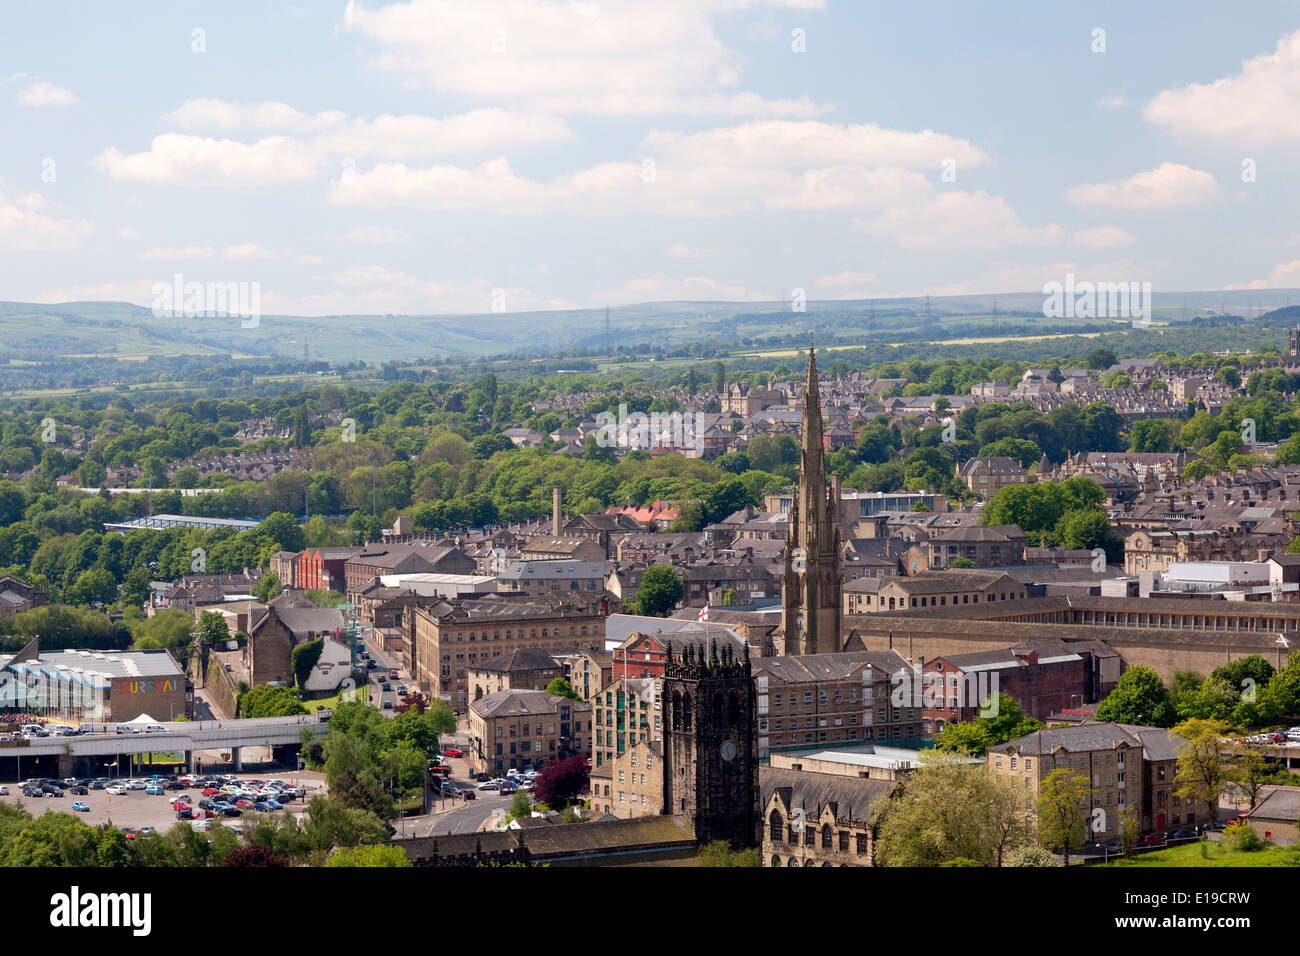 View of the town from Godley Bridge, Halifax, West Yorkshire - Stock Image